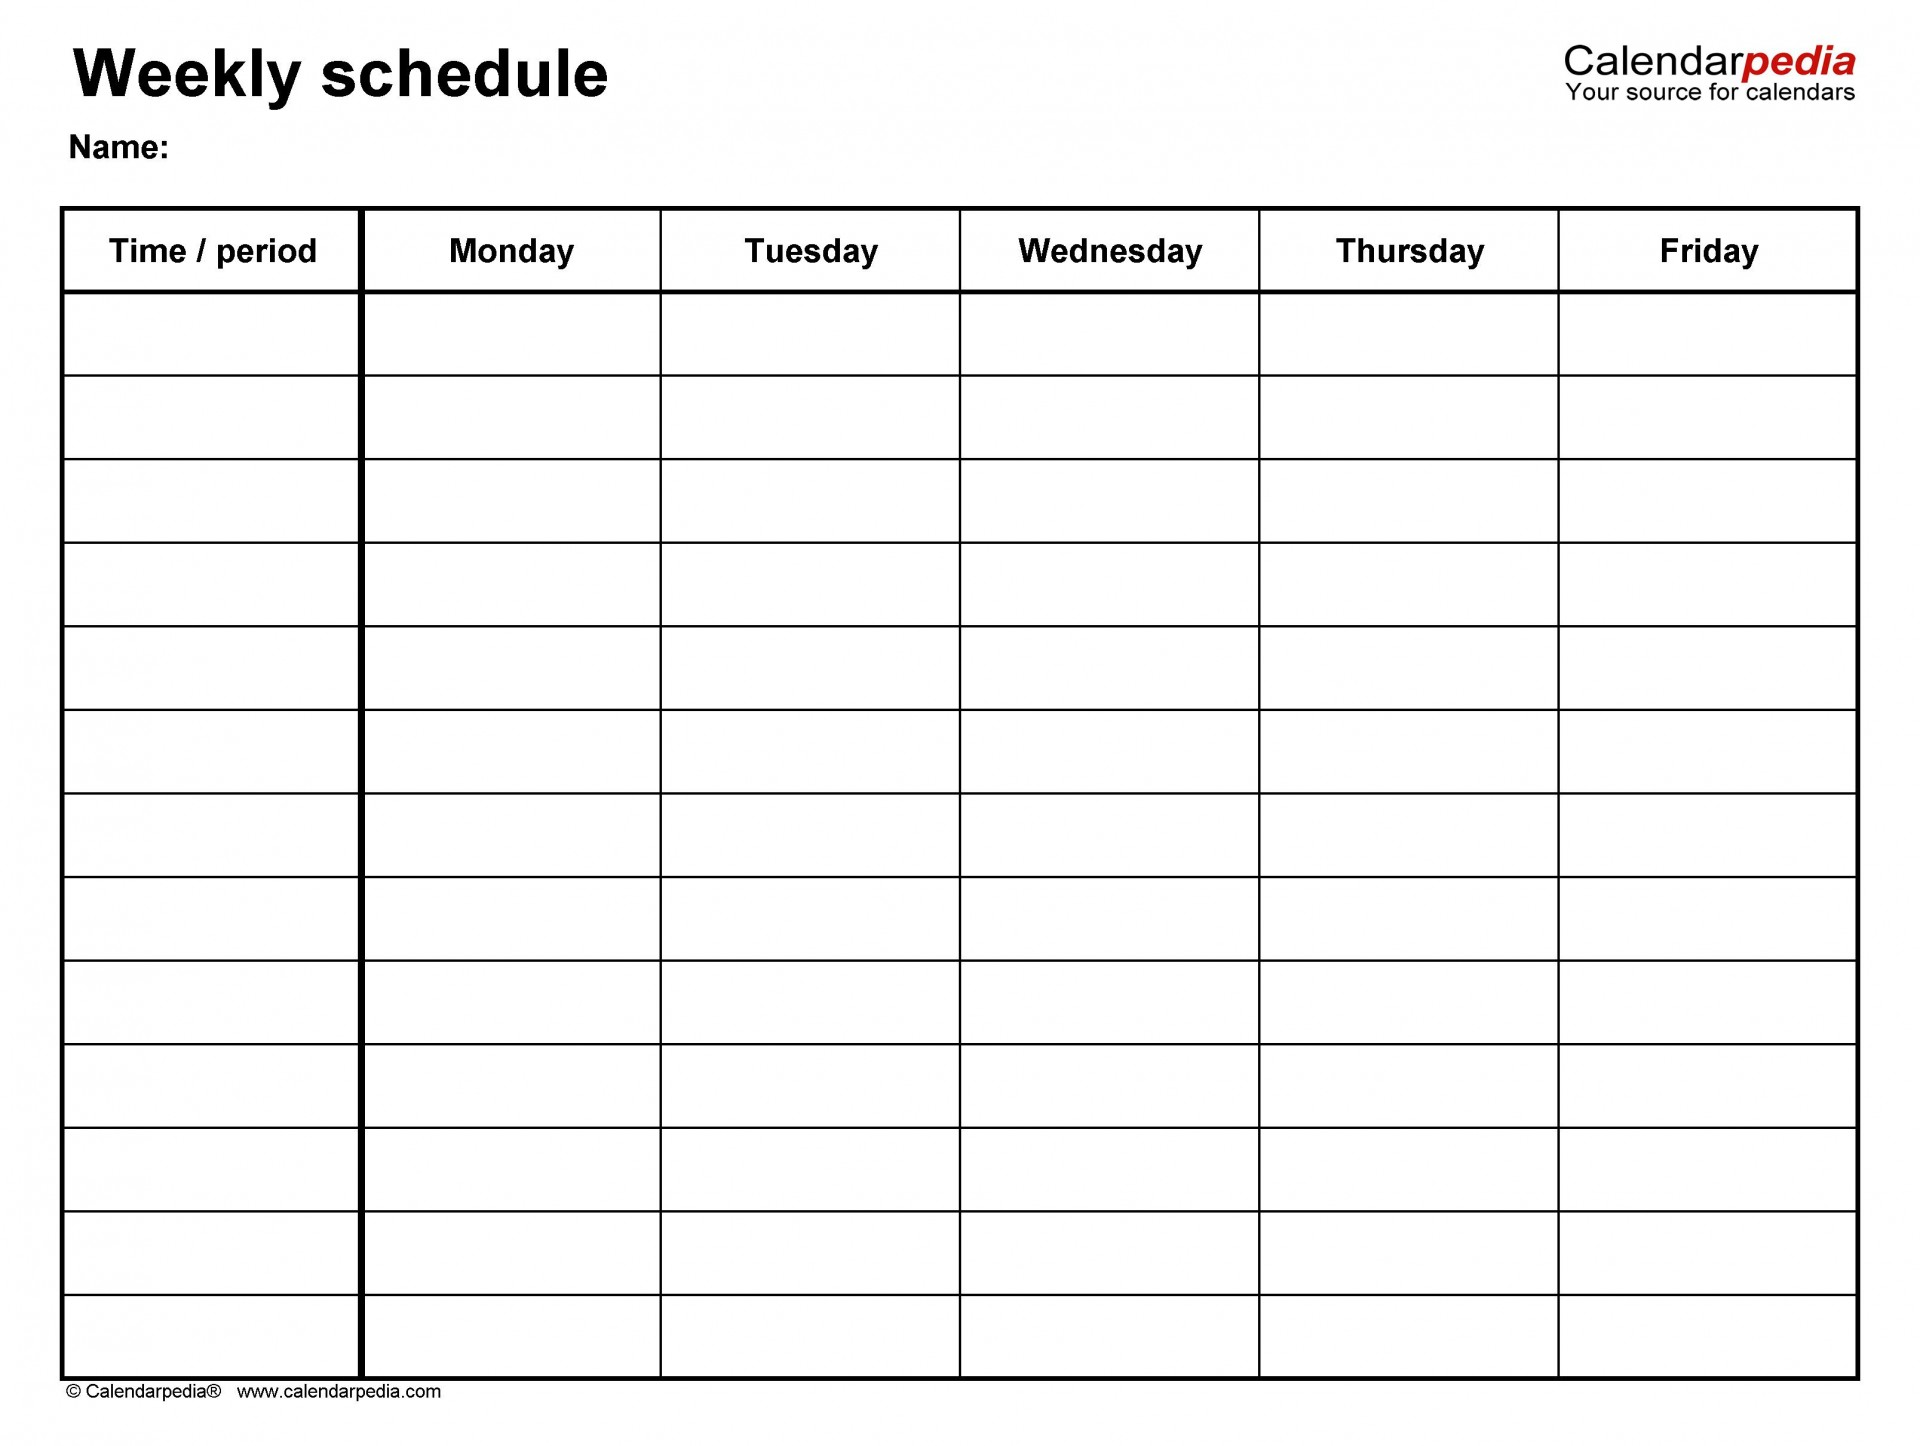 009 Fearsome Weekly Schedule Template Pdf Image  With Time Study Work1920